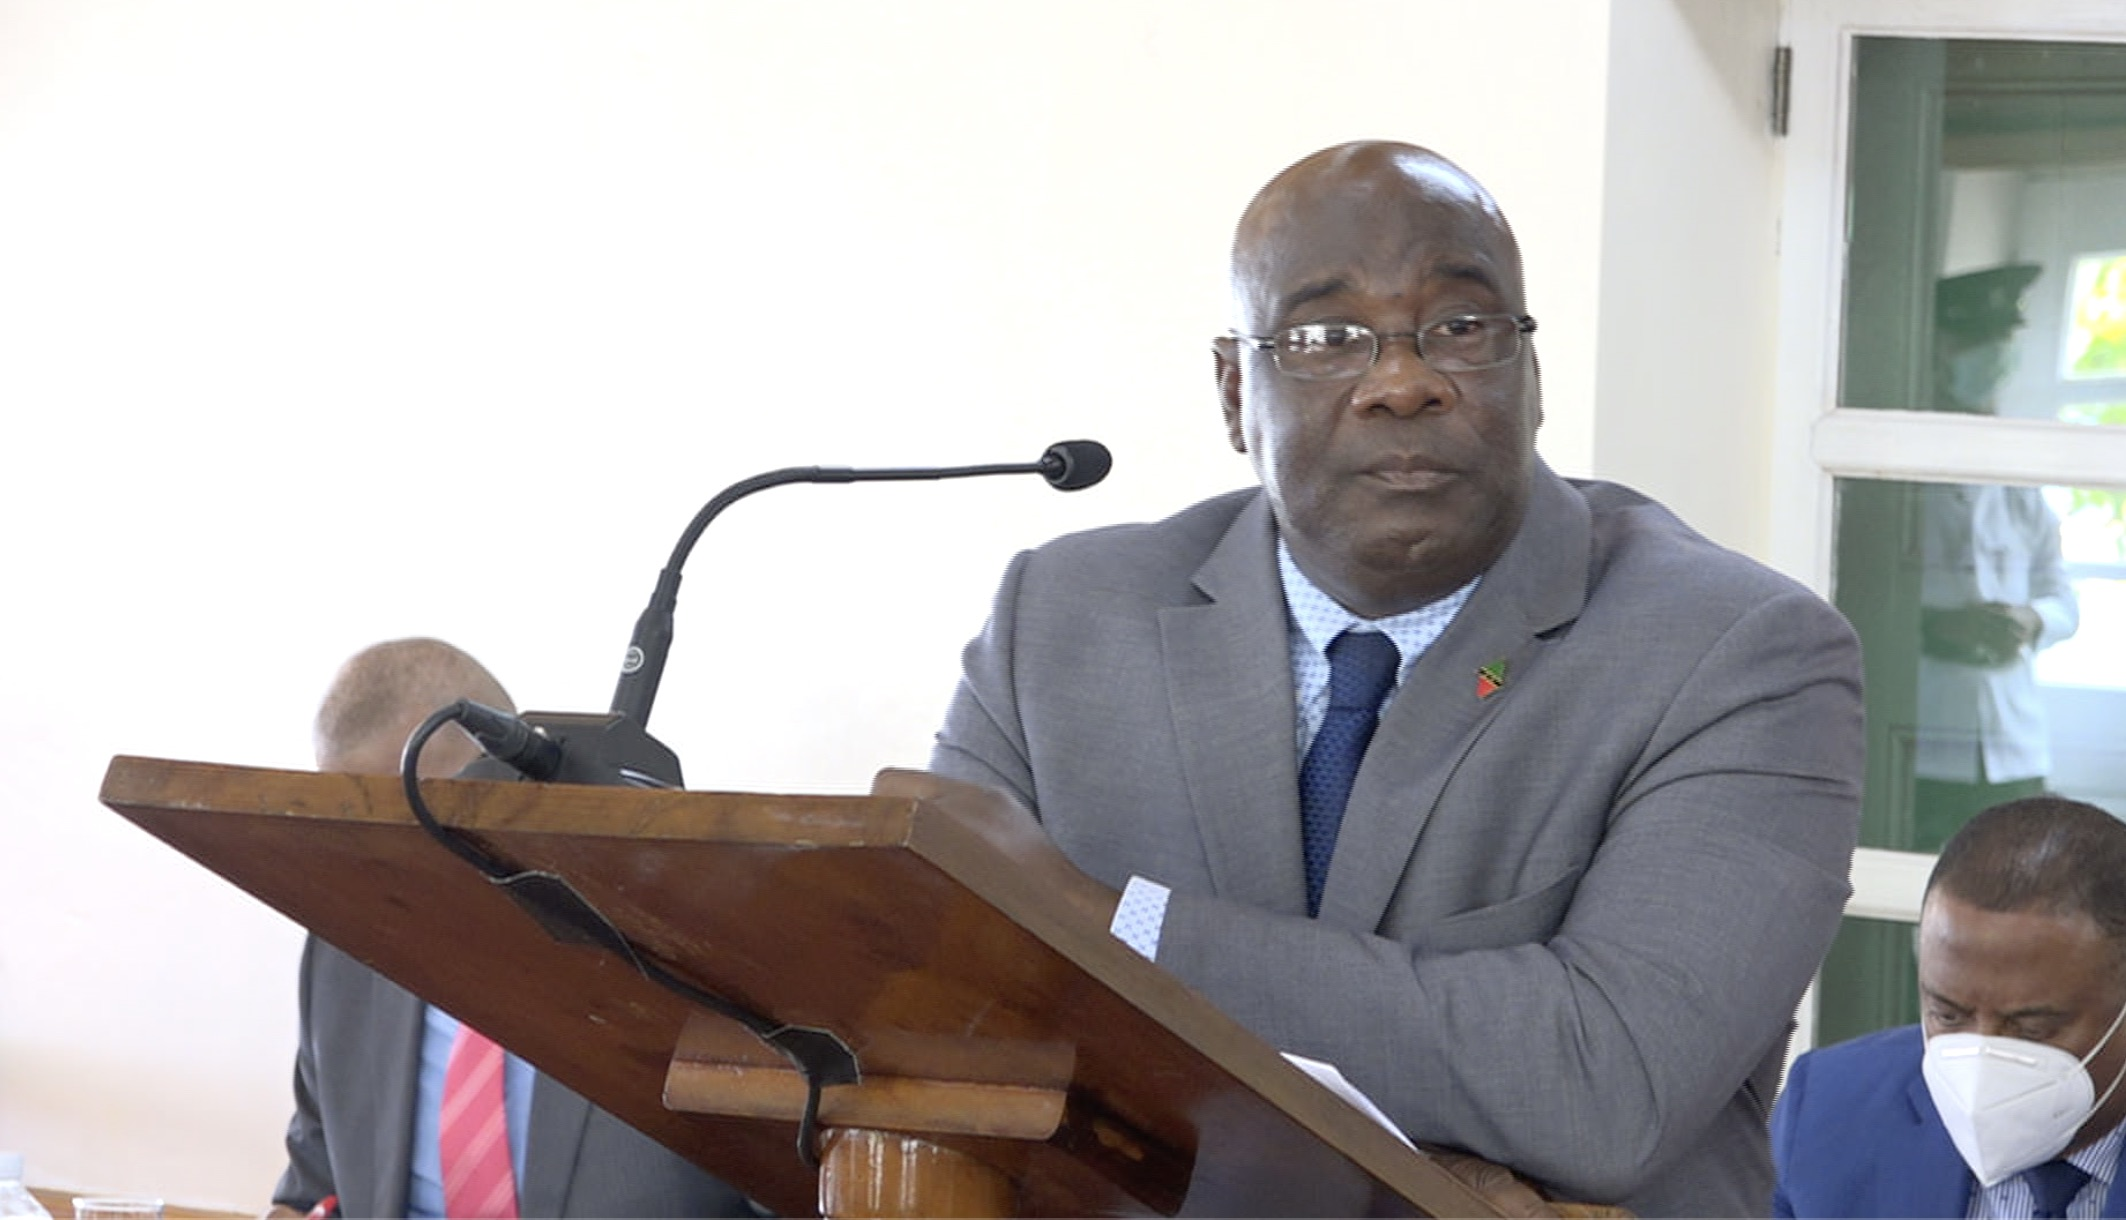 Hon. Alexis Jeffers, Deputy Premier of Nevis and Minister of Agriculture making his presentation at a sitting of the Nevis Island Assembly on July 02, 2020